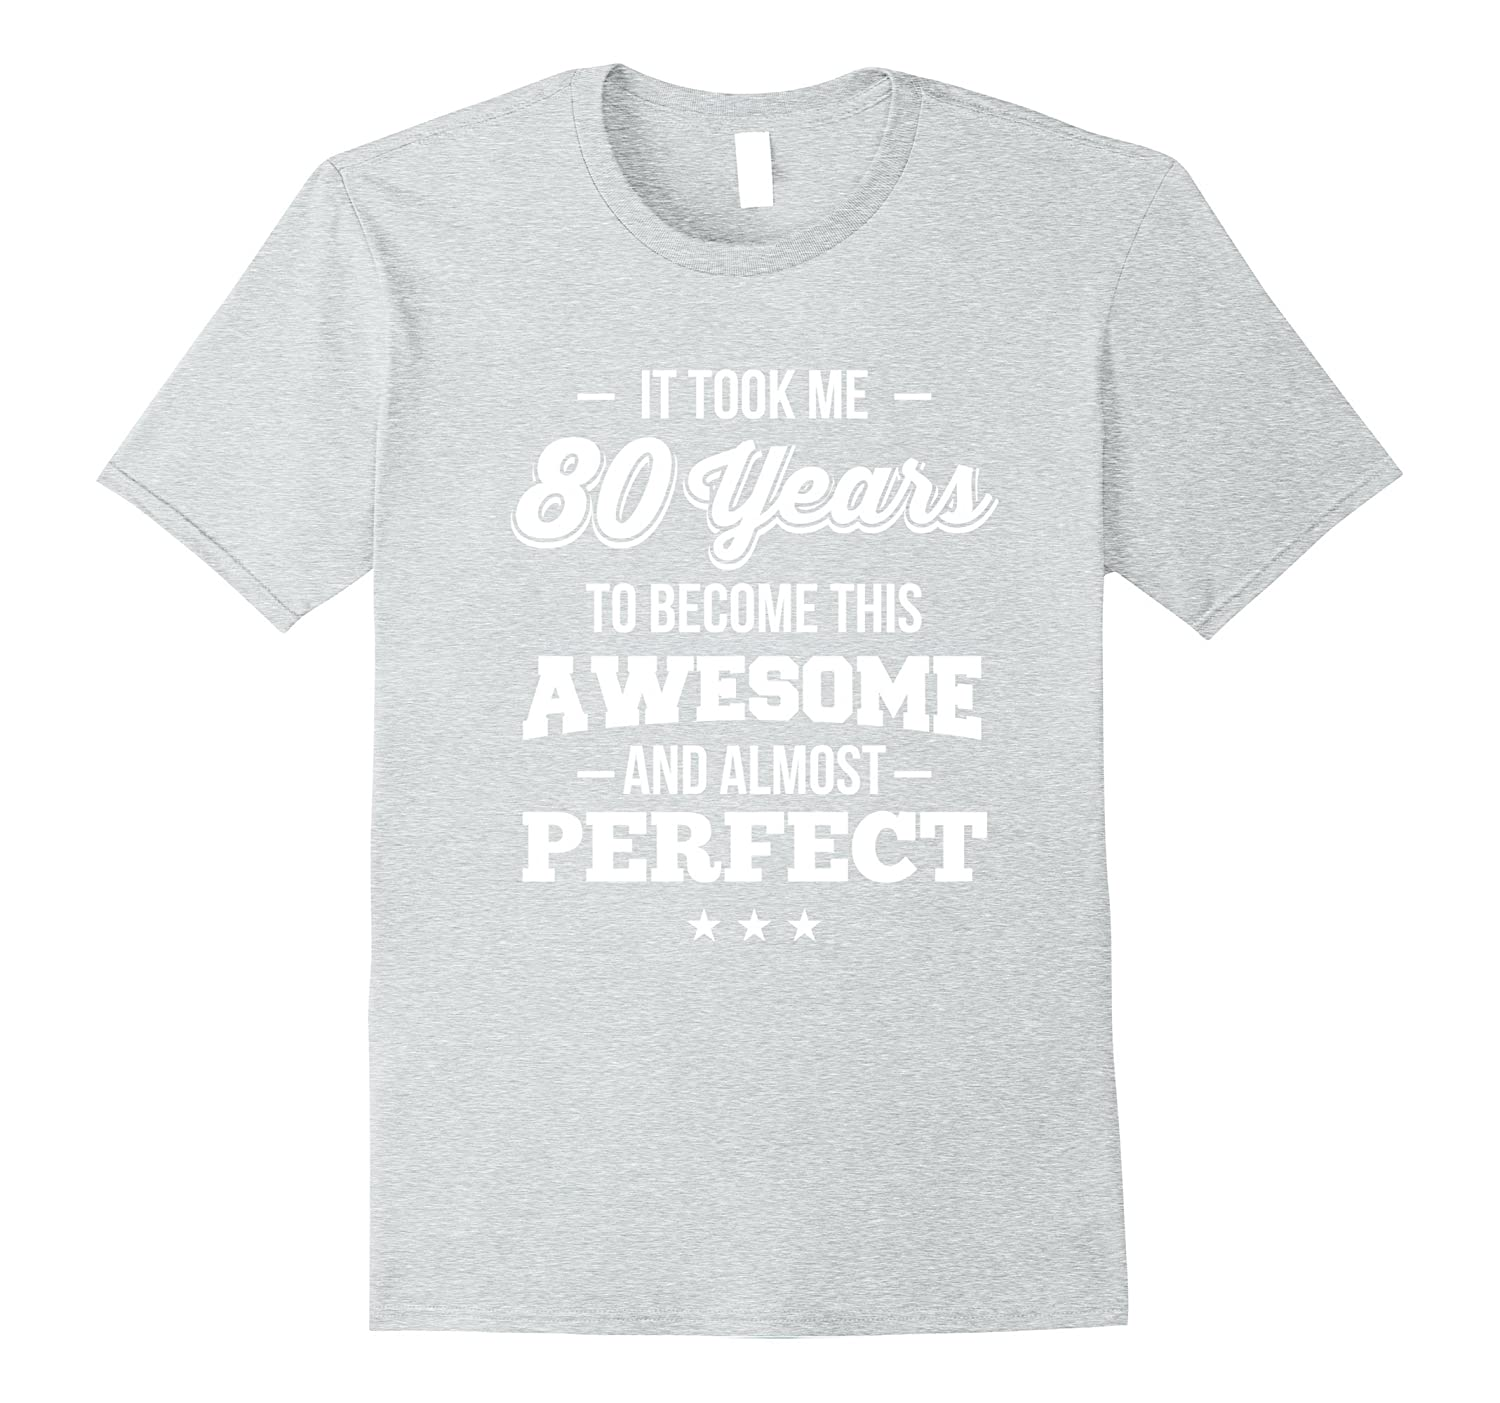 ec6706a7 80th Birthday Shirt Took 80 Years Become Awesome Born 1937 – Hntee.com